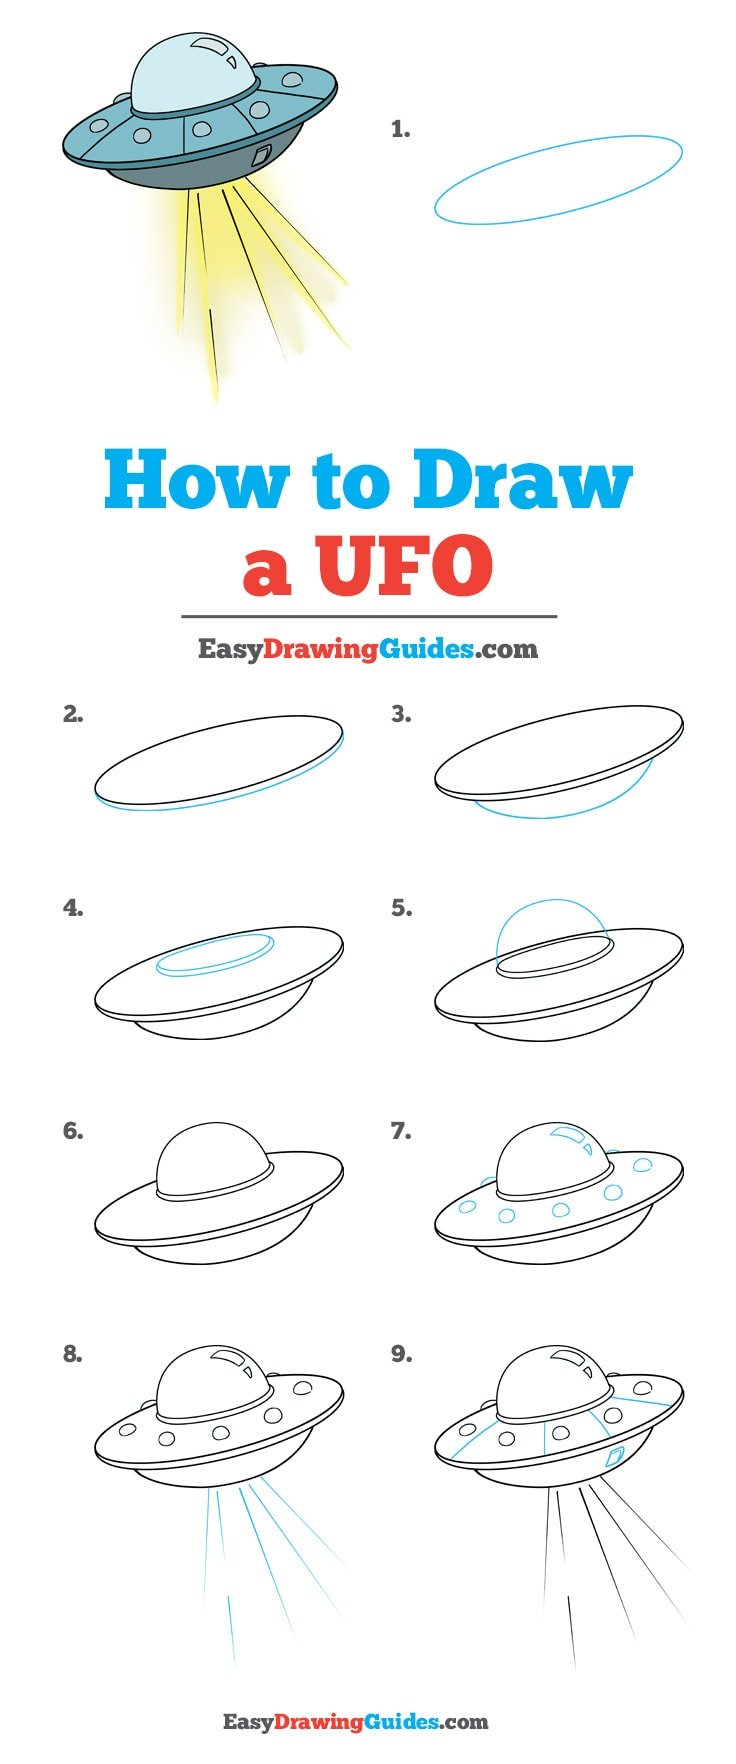 How to Draw UFO